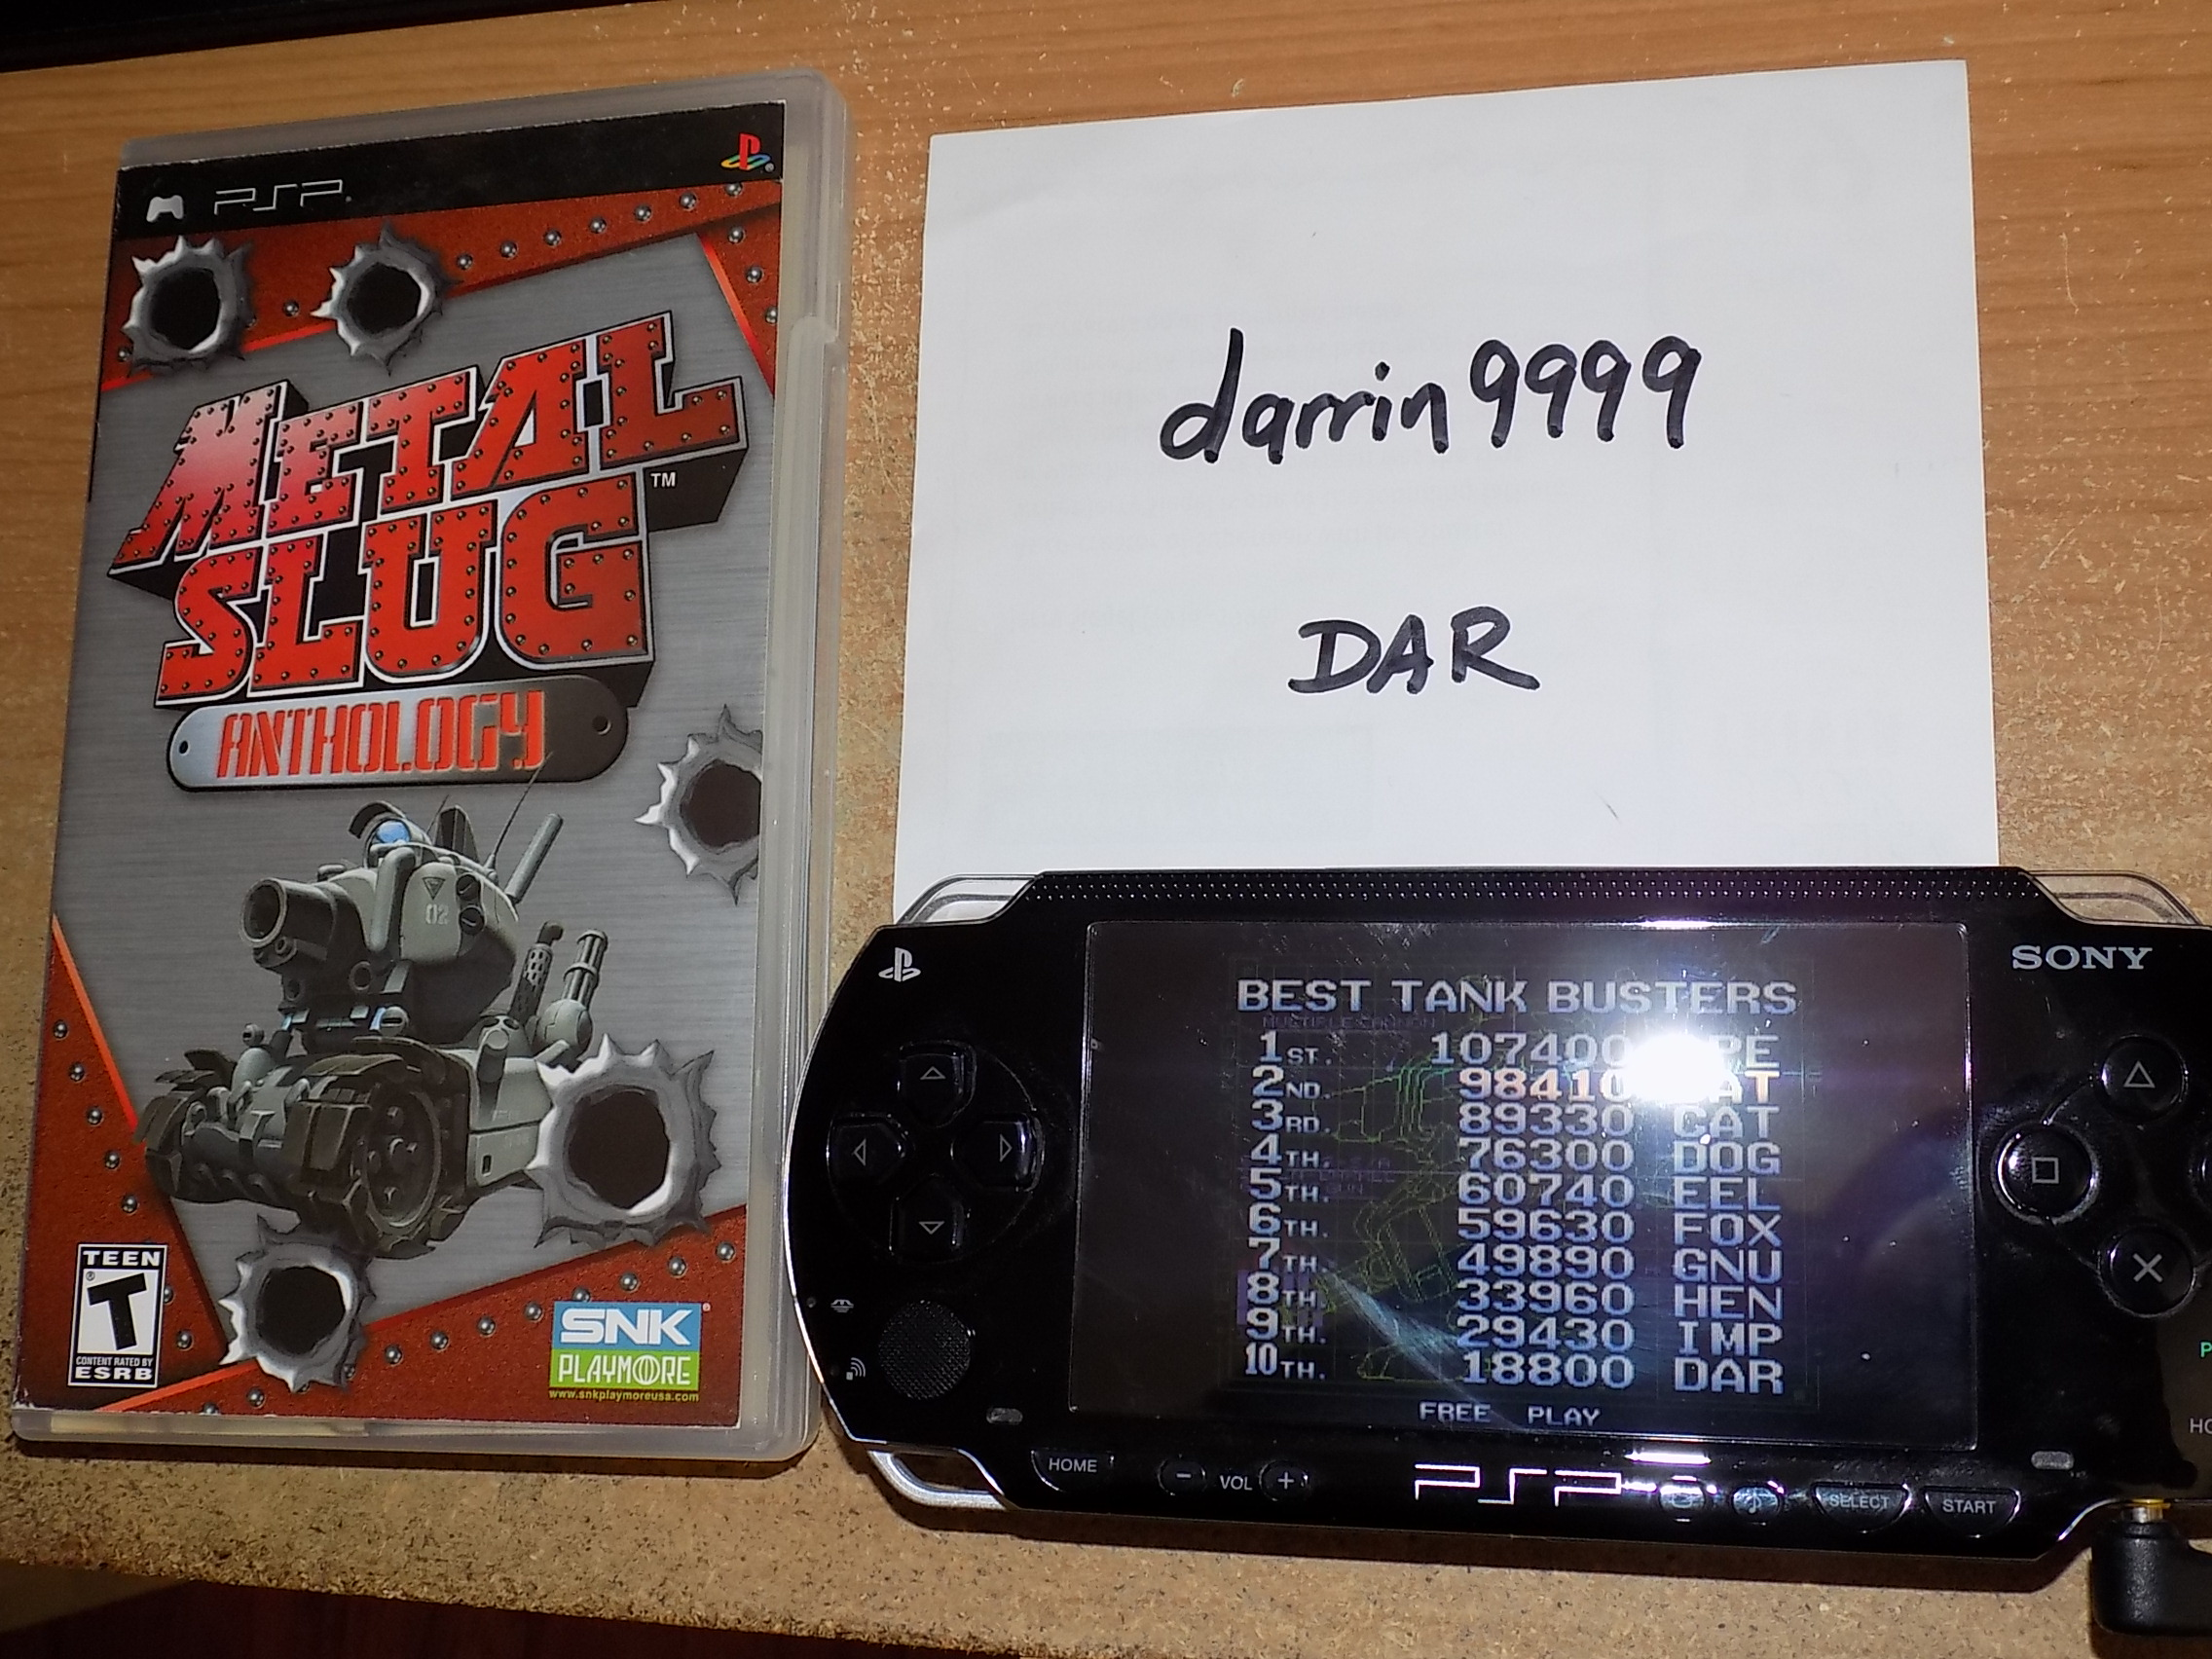 darrin9999: Metal Slug Anthology: Metal Slug 5 (PSP) 18,800 points on 2018-09-14 16:03:28